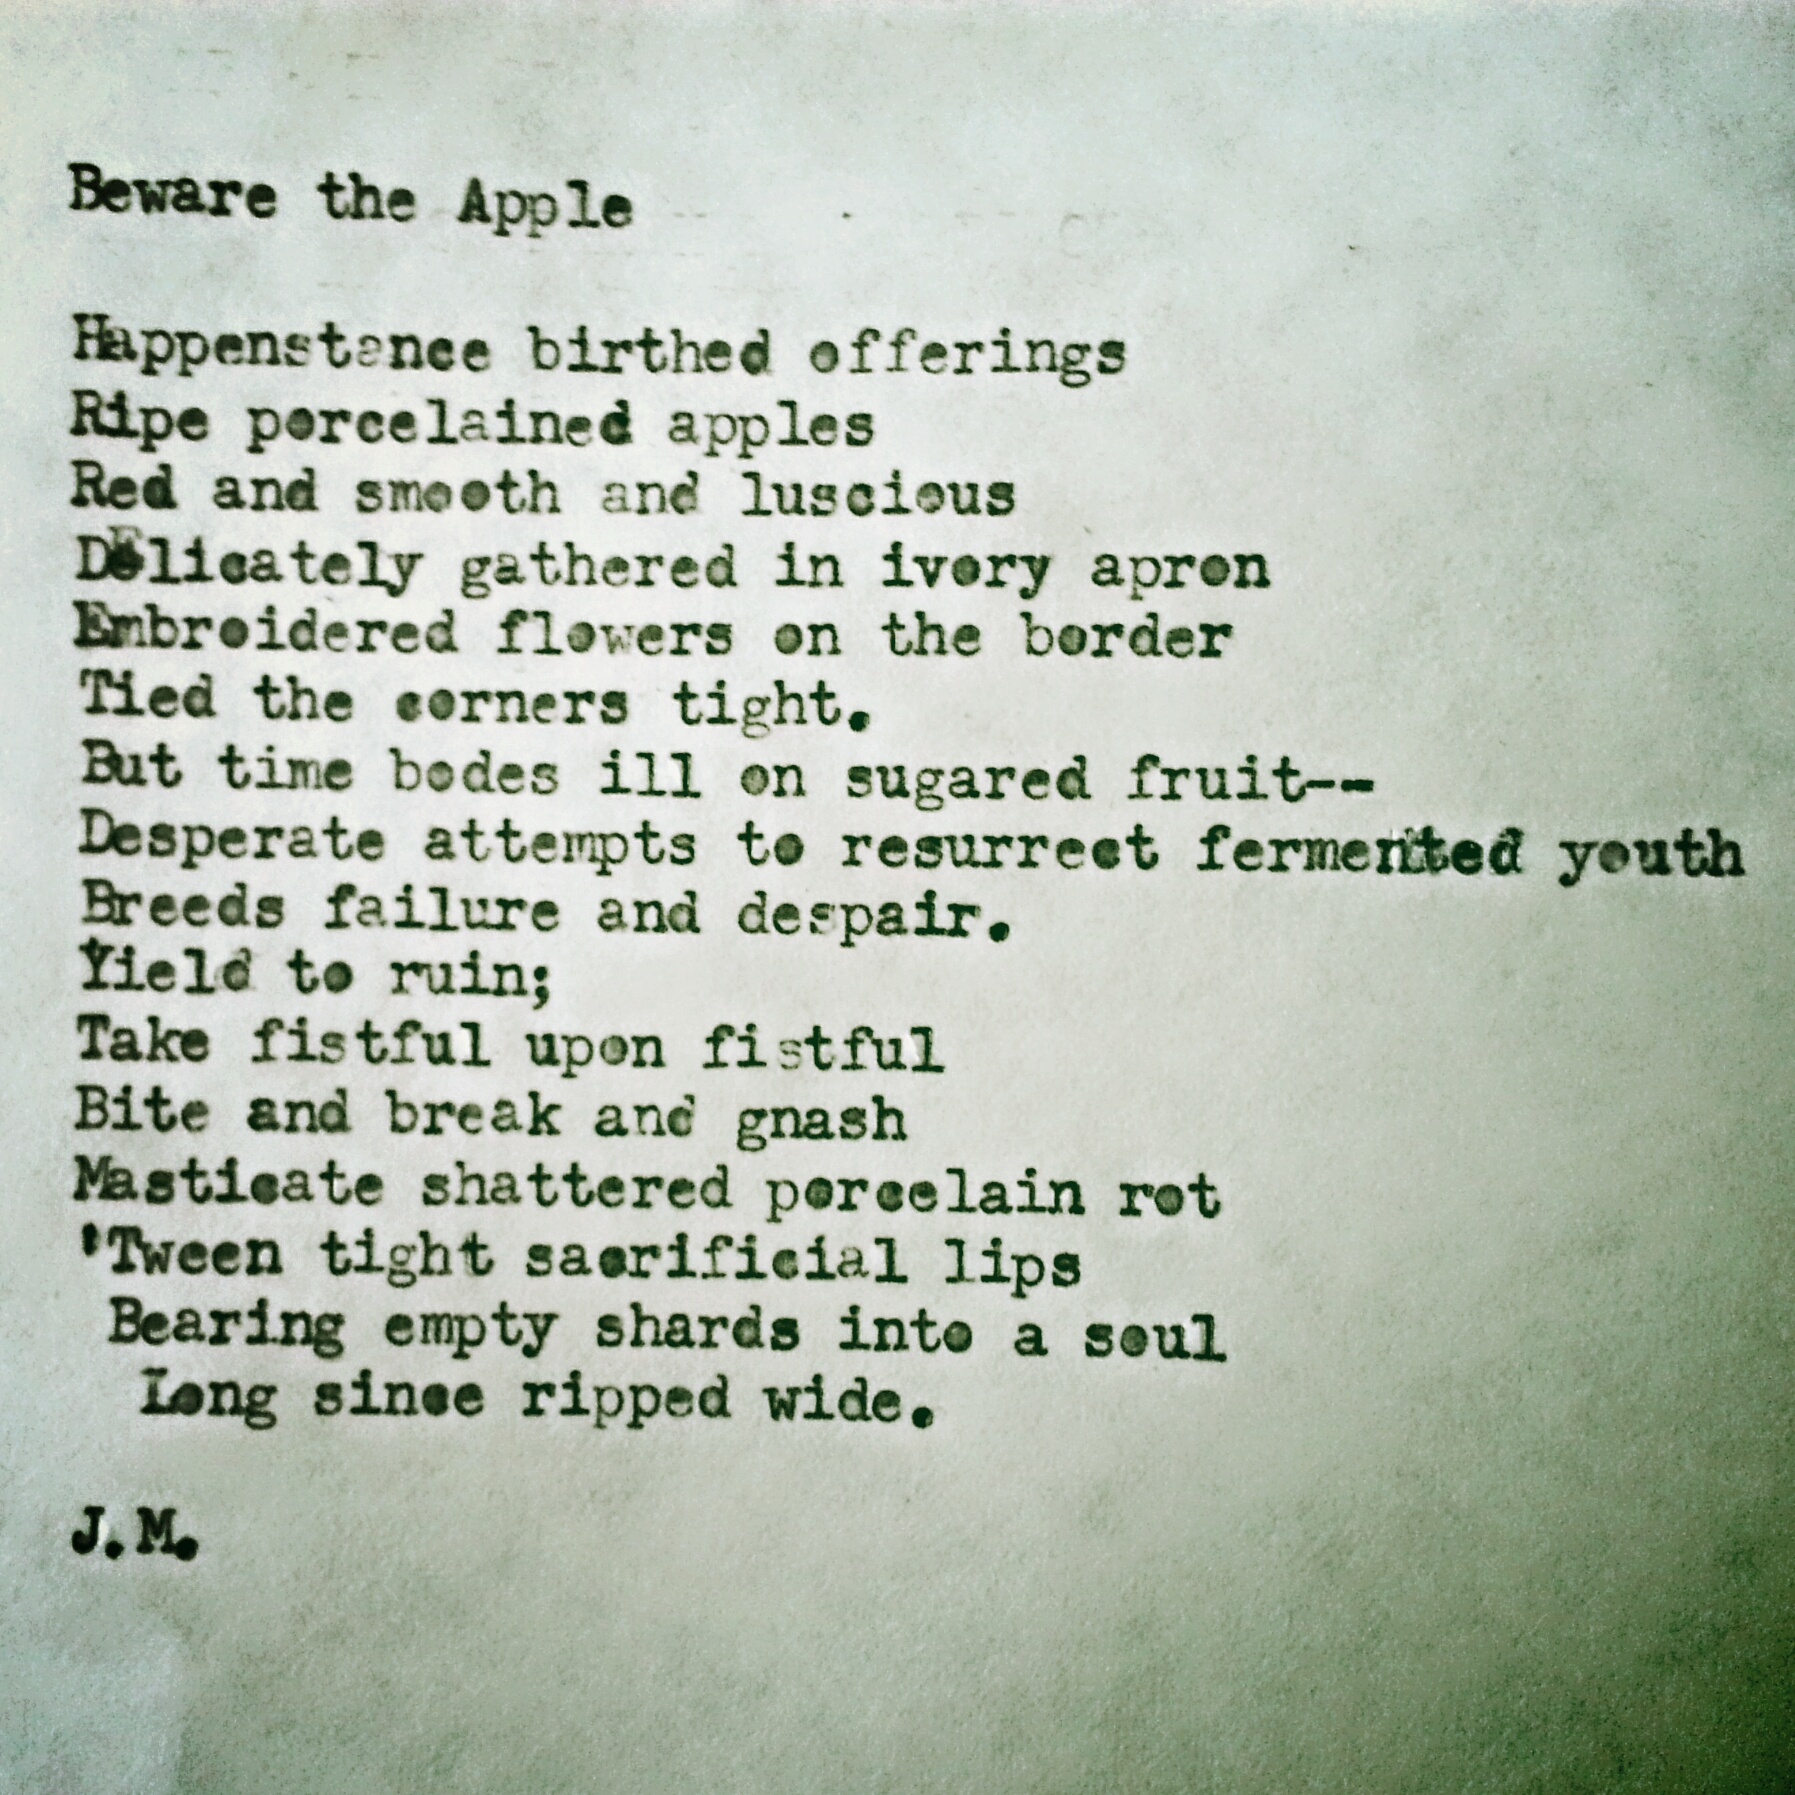 Beware the Apple (a poem)